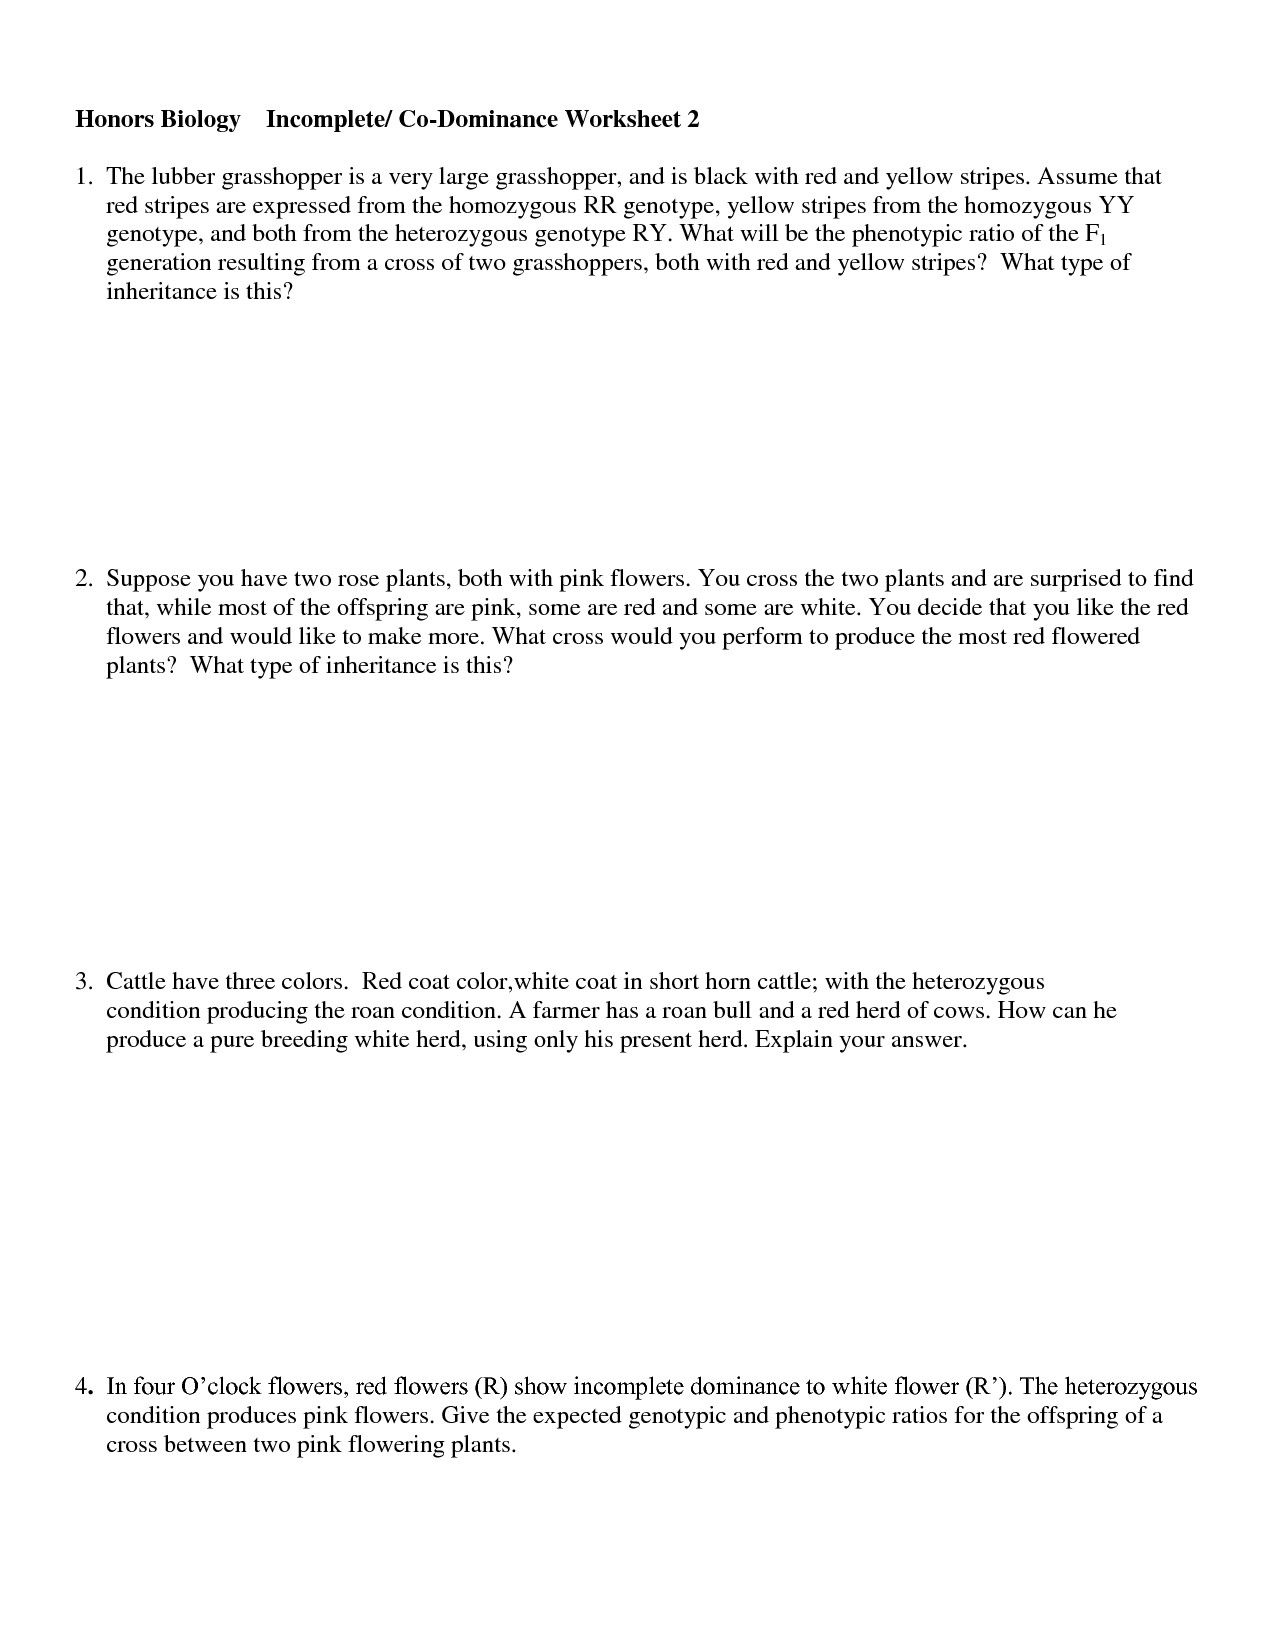 Codominance Incomplete Dominance Worksheet Answers